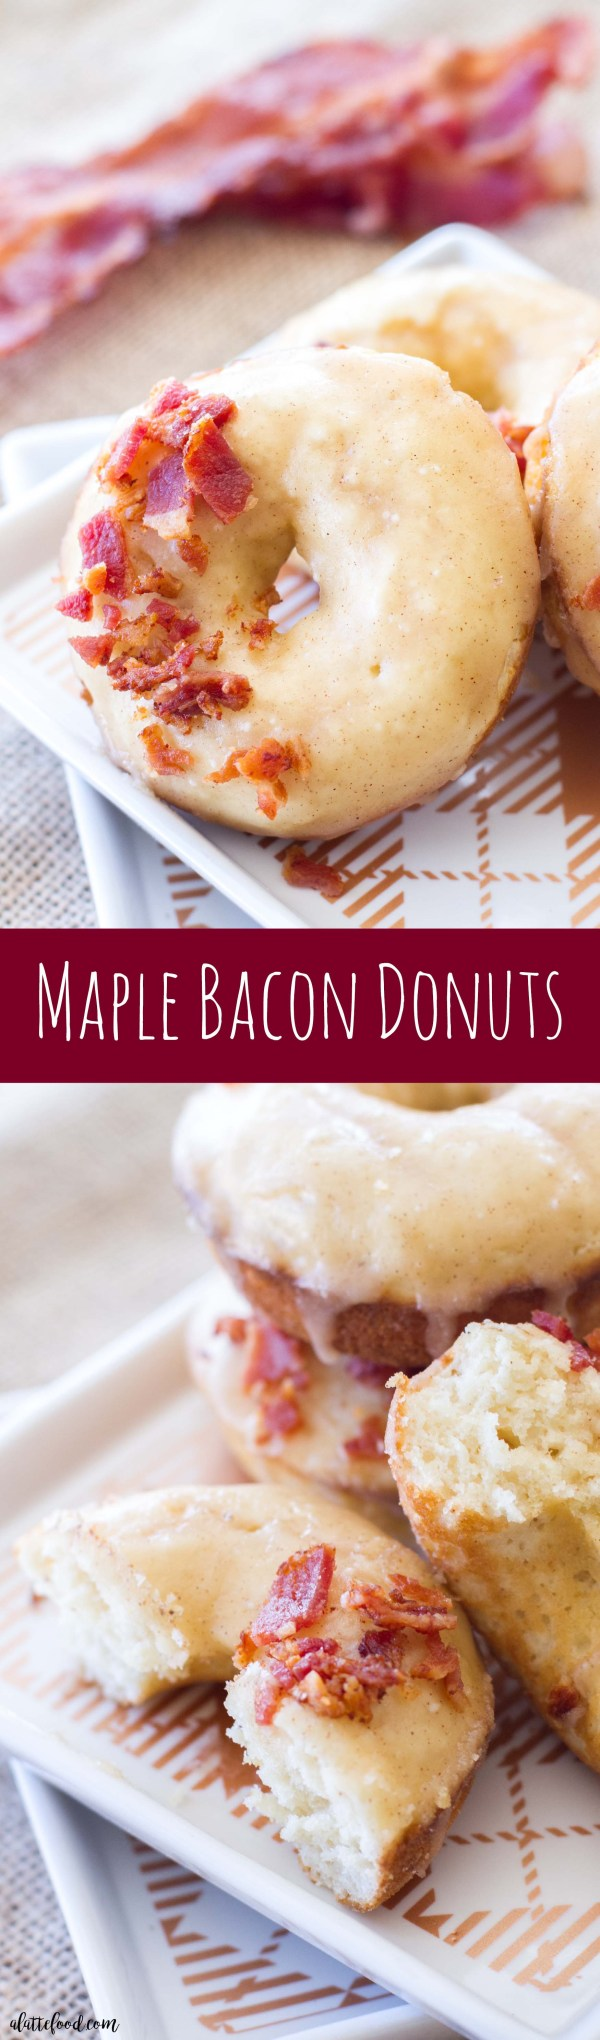 These baked maple donuts are topped with smoky bacon to make the best breakfast or brunch recipe!